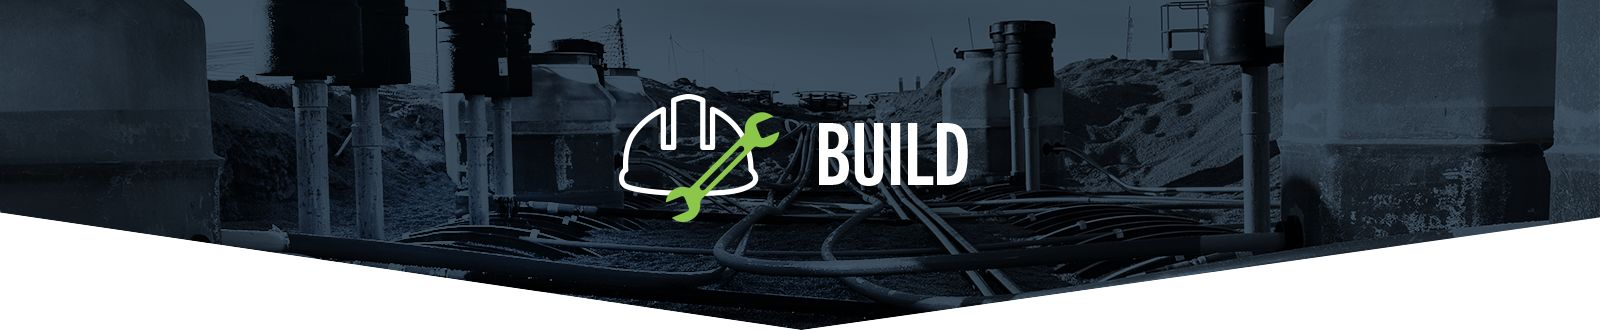 FFS-Build-Page-Duo-Banner.psd